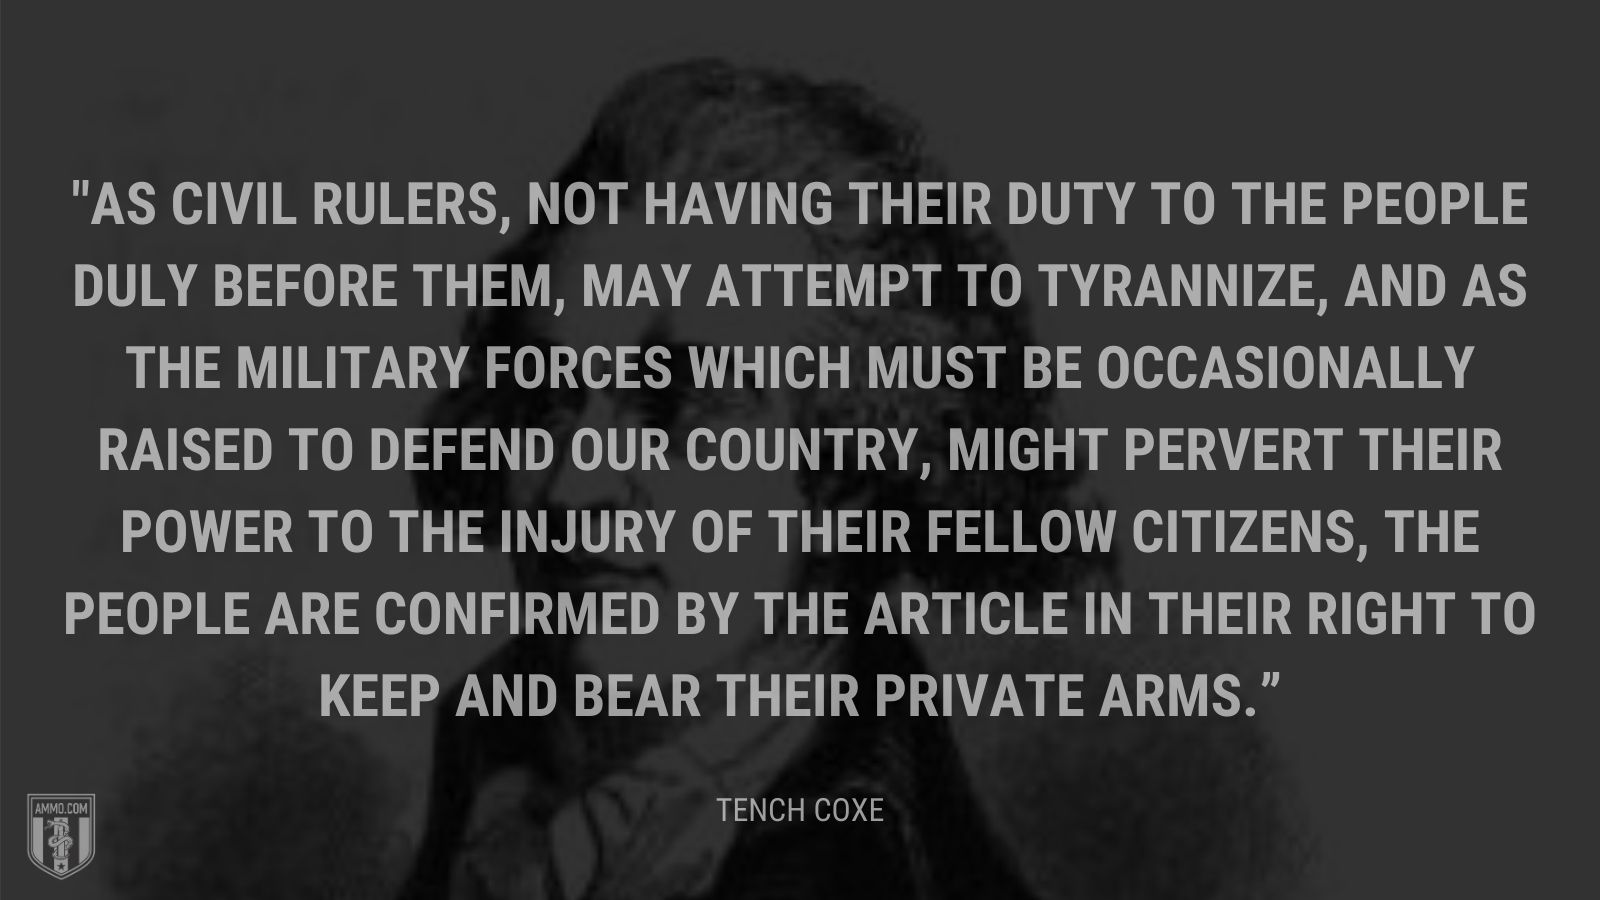 """As civil rulers, not having their duty to the people duly before them, may attempt to tyrannize, and as the military forces which must be occasionally raised to defend our country, might pervert their power to the injury of their fellow citizens, the people are confirmed by the article in their right to keep and bear their private arms."" - Tench Coxe"